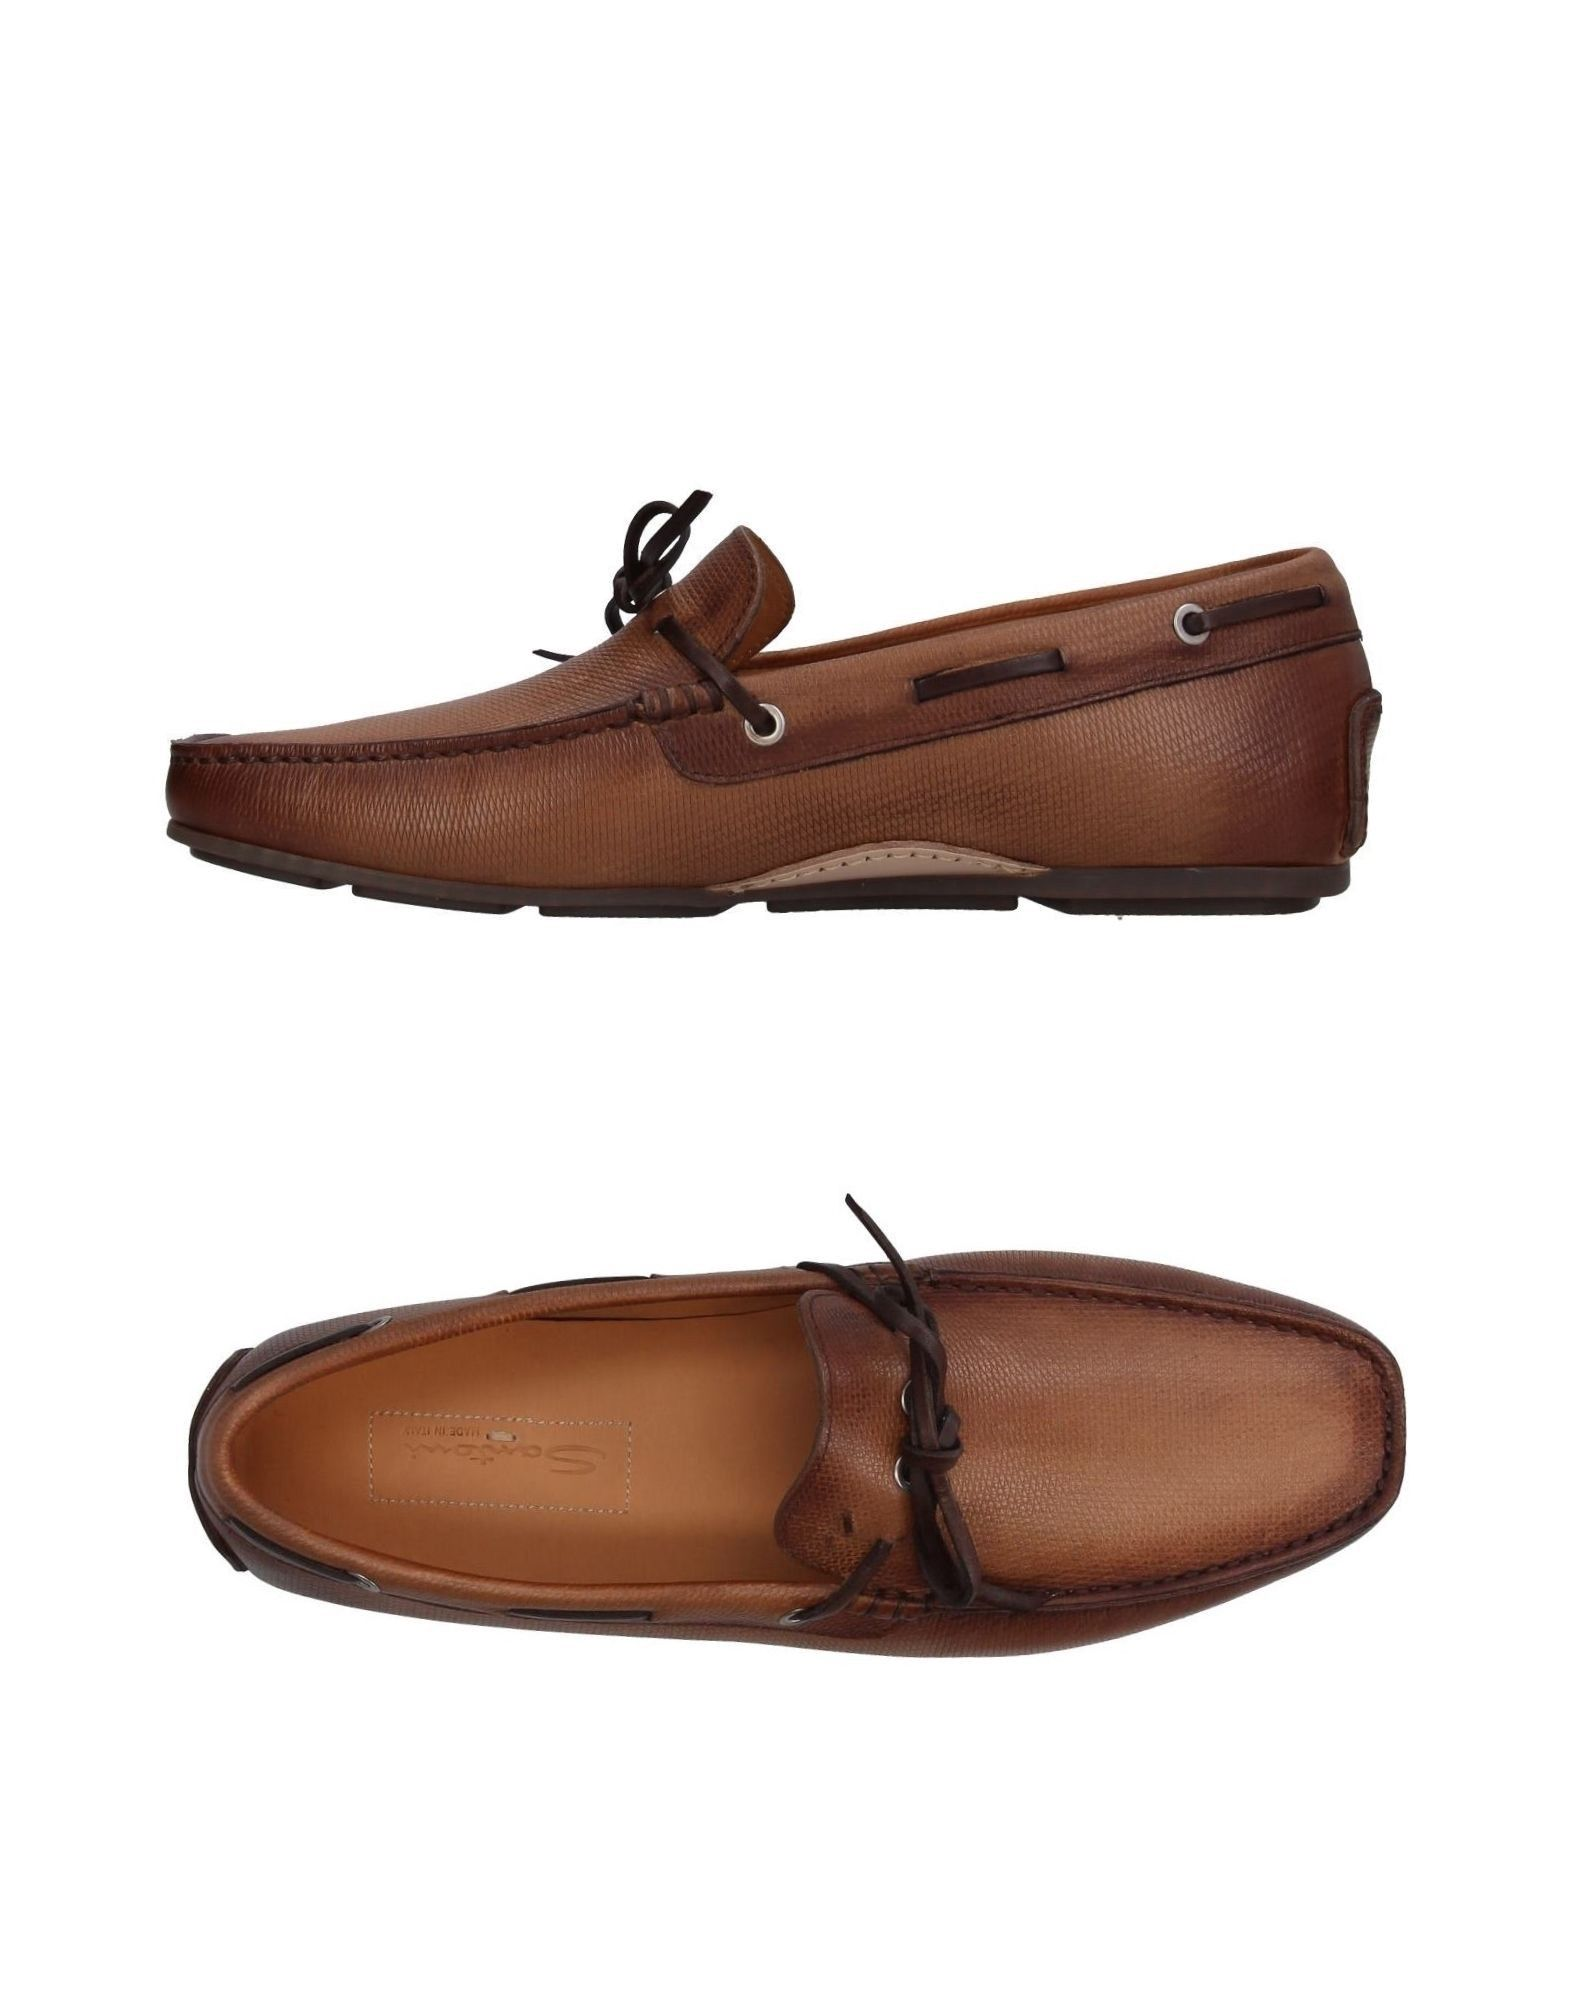 470afcadb93 SANTONI Loafer.  santoni  shoes